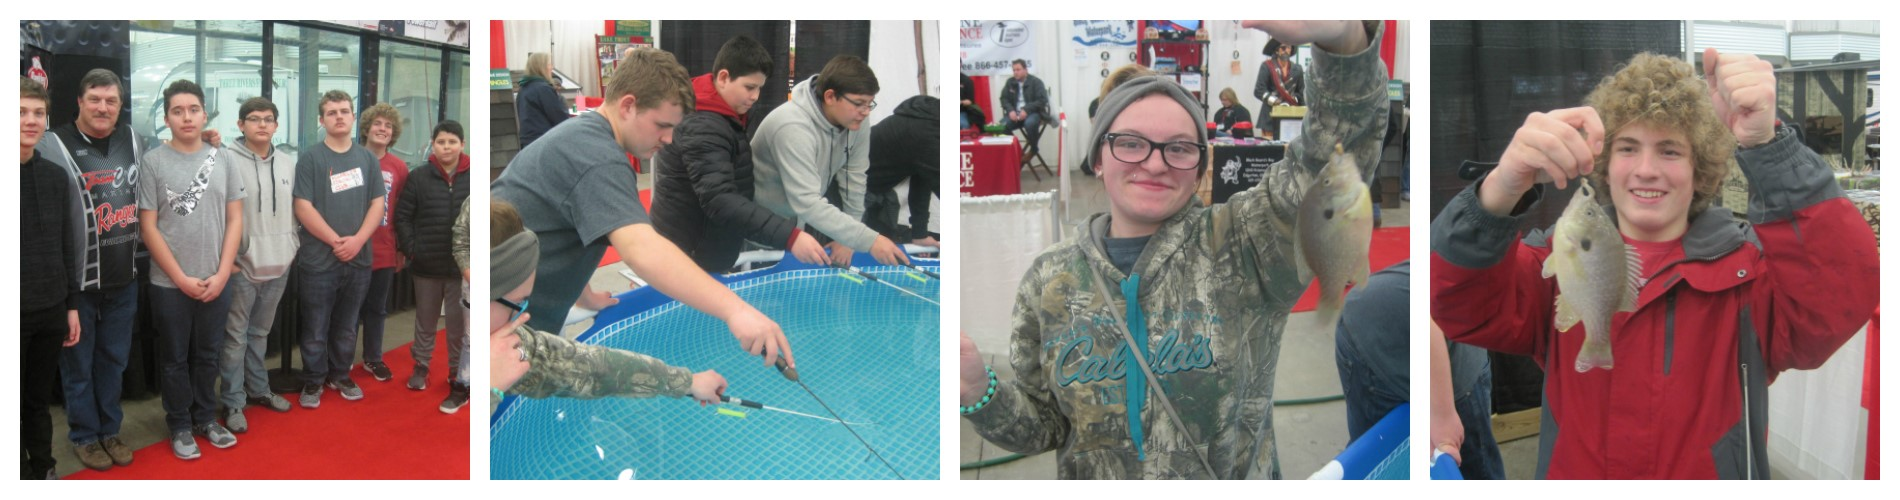 8th Grade Charger Fishing Club members traveled to the All-American Outdoor Expo in Ft. Wayne on January 25th.